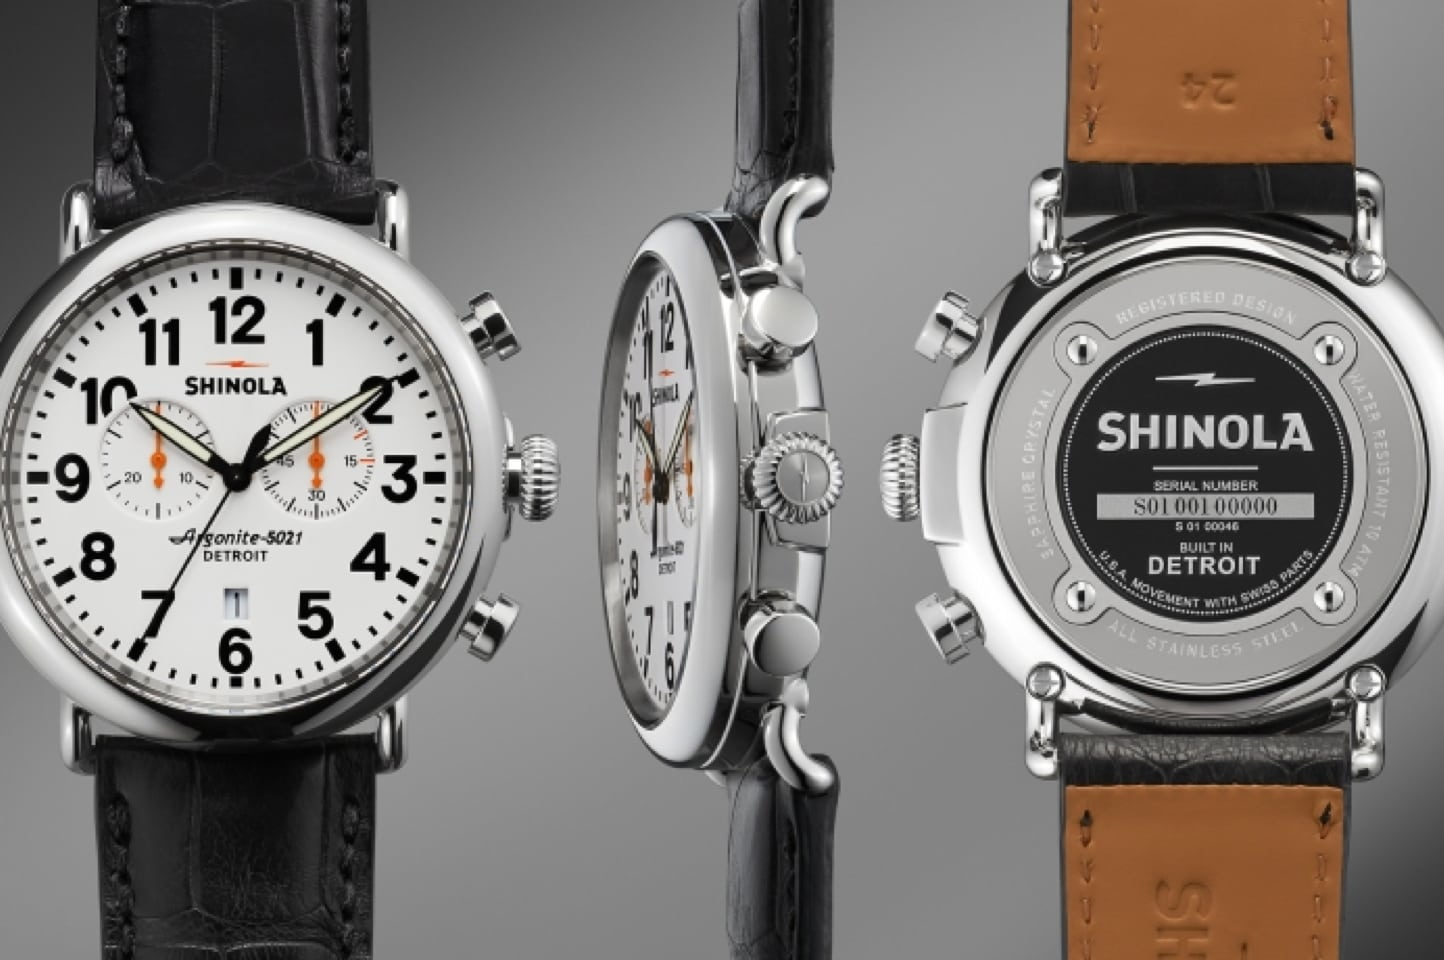 Shinola Runwell Chrono Watch